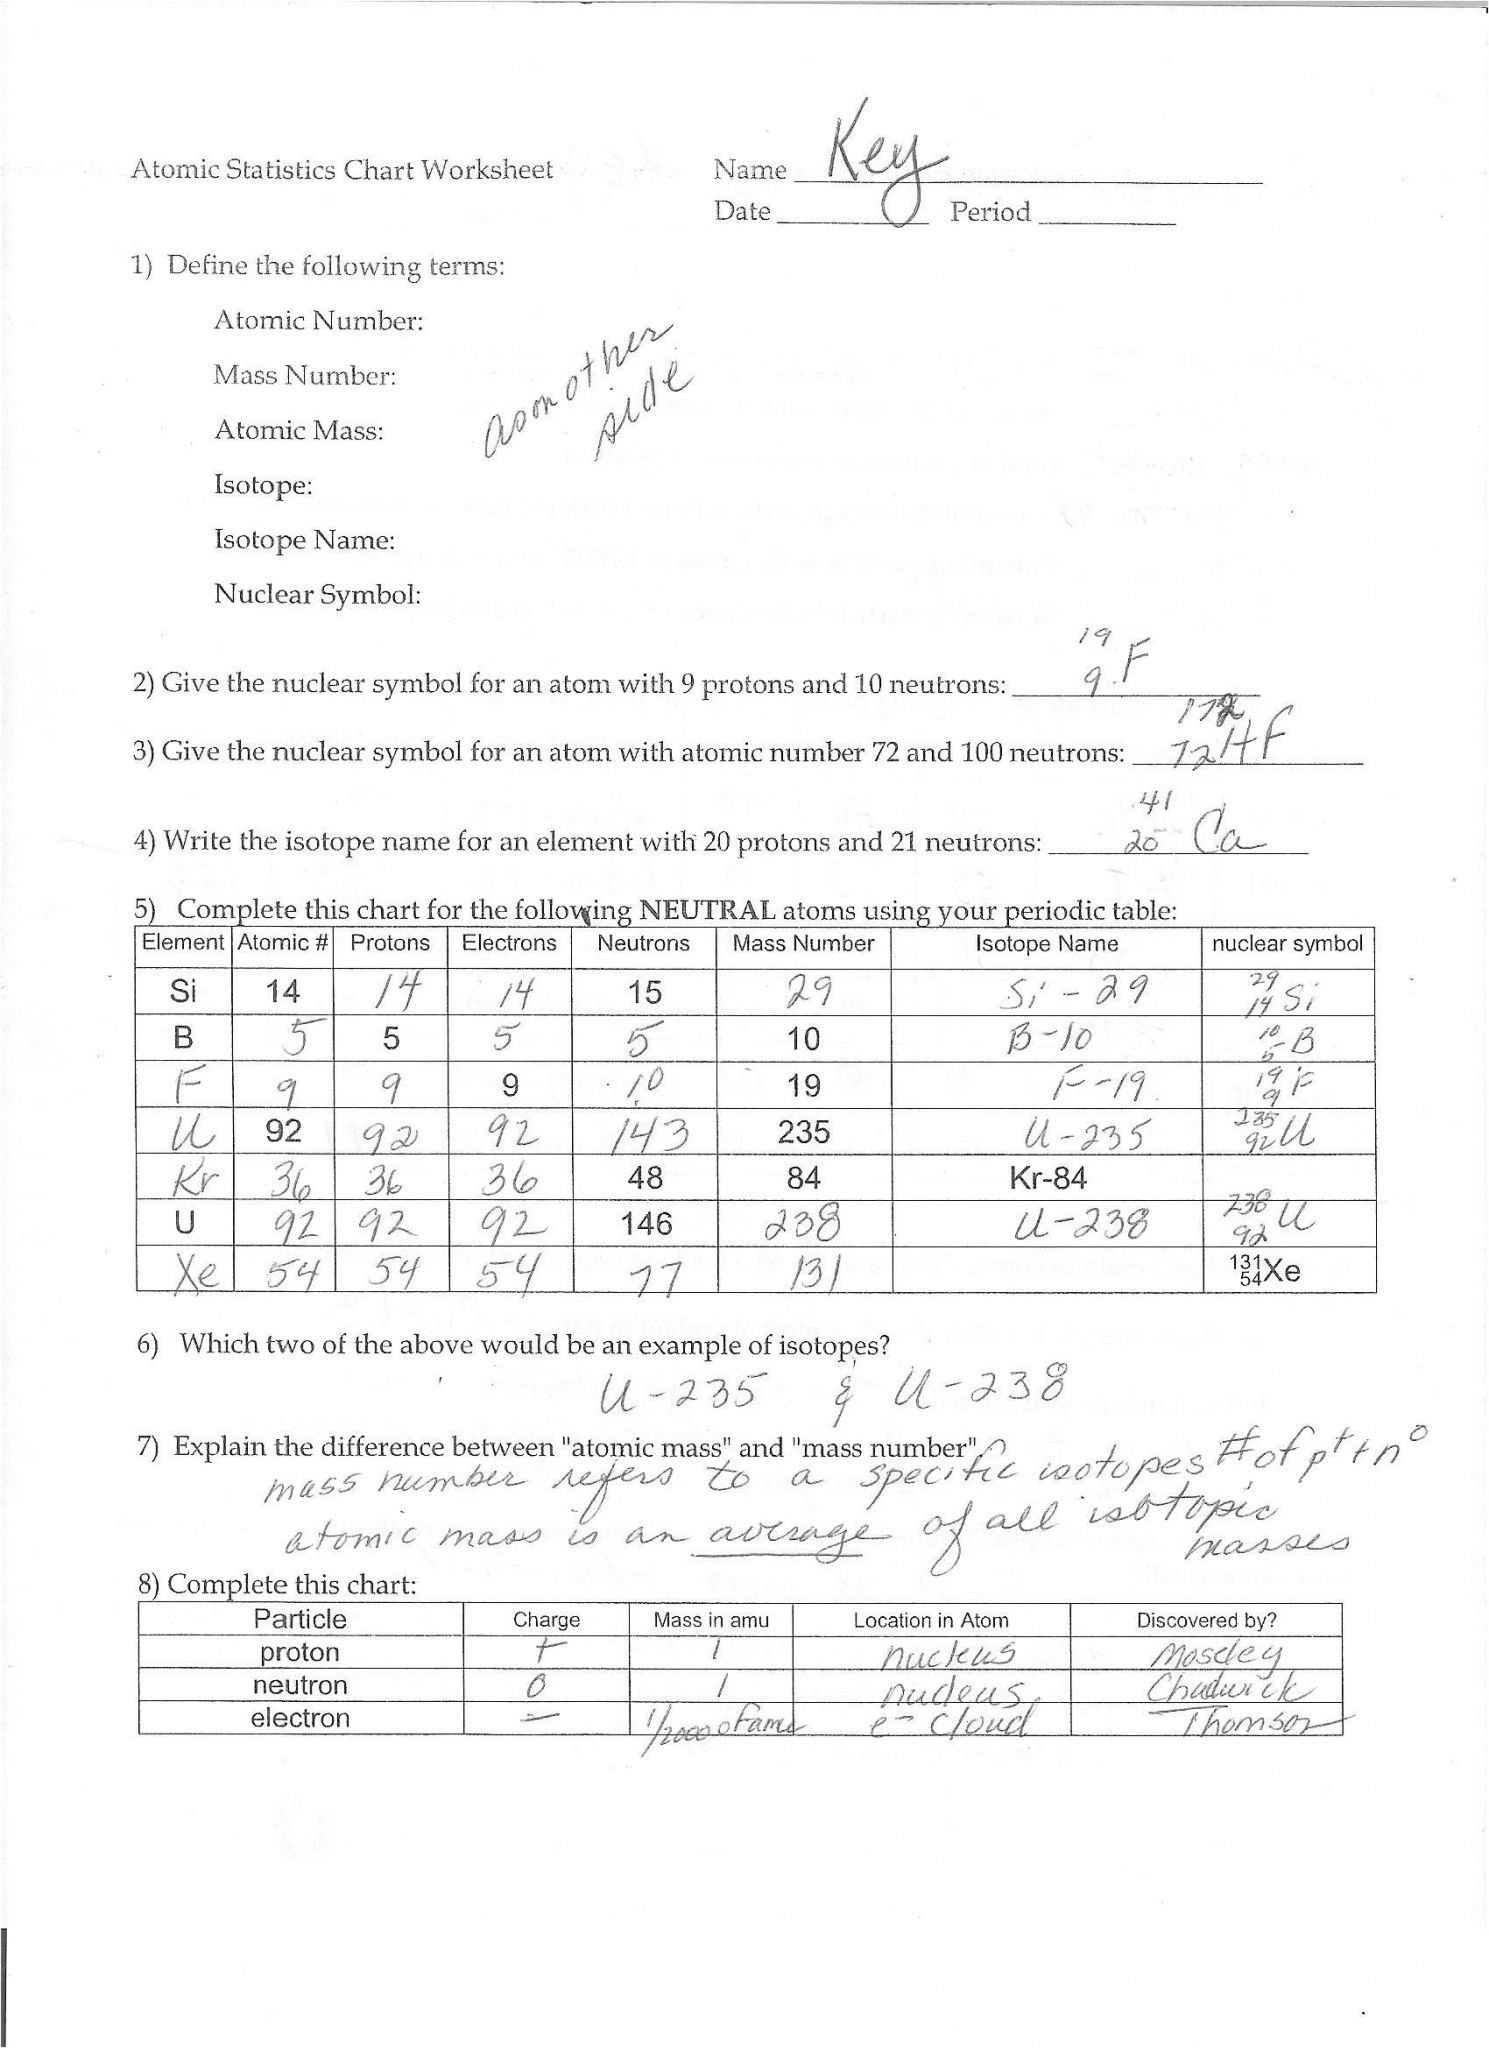 Easy Radioactive Decay Worksheet Printable Worksheets And Activities For Teachers Parents Tutors And Homeschool Families